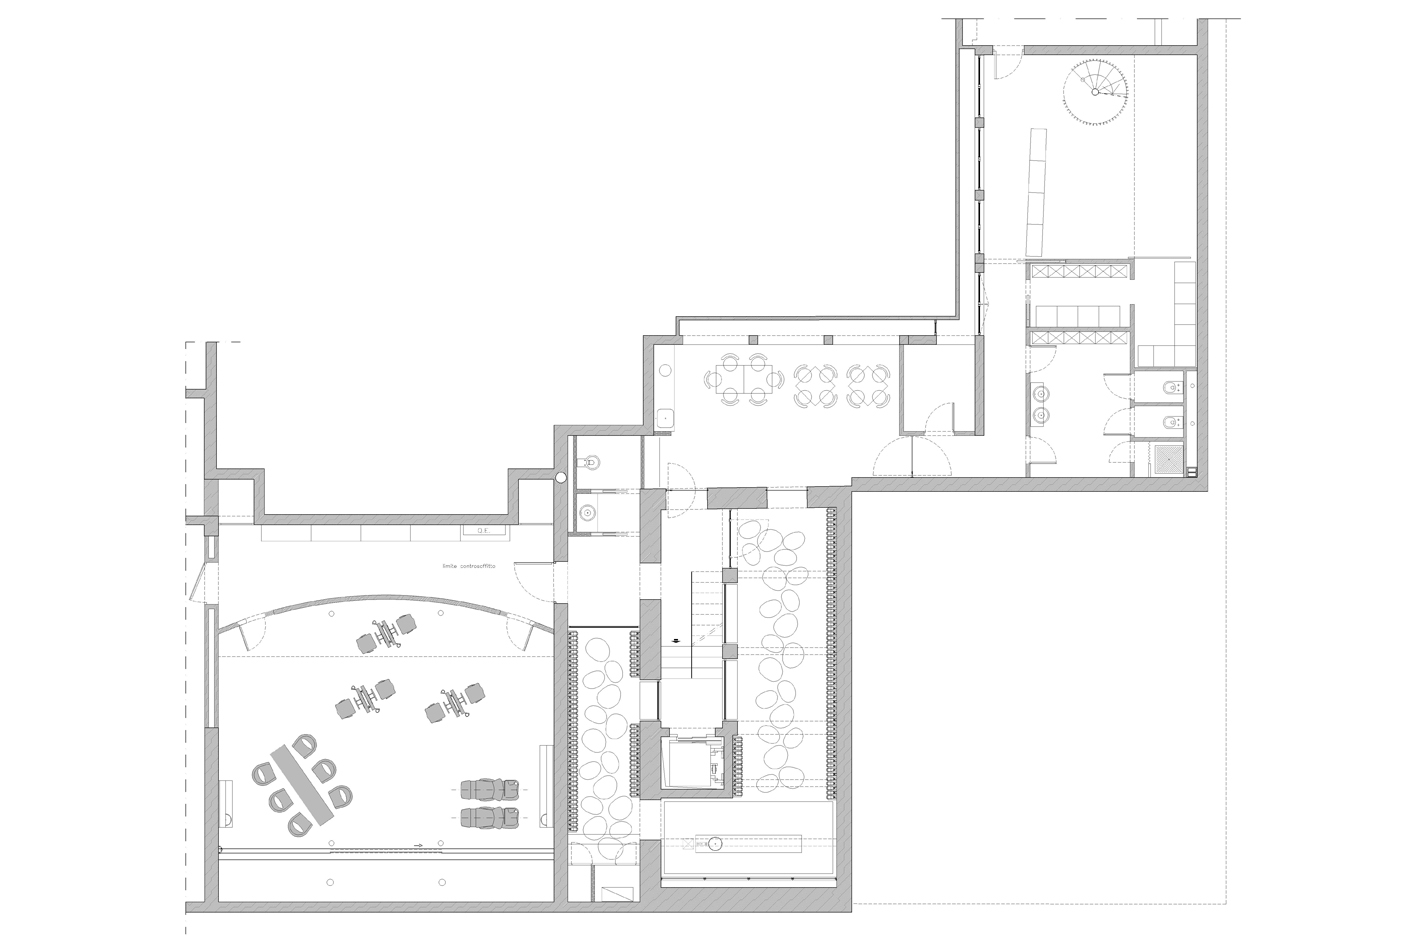 Plan rnovation maison rnovation duune maison ancienne en for Plan maison ancienne